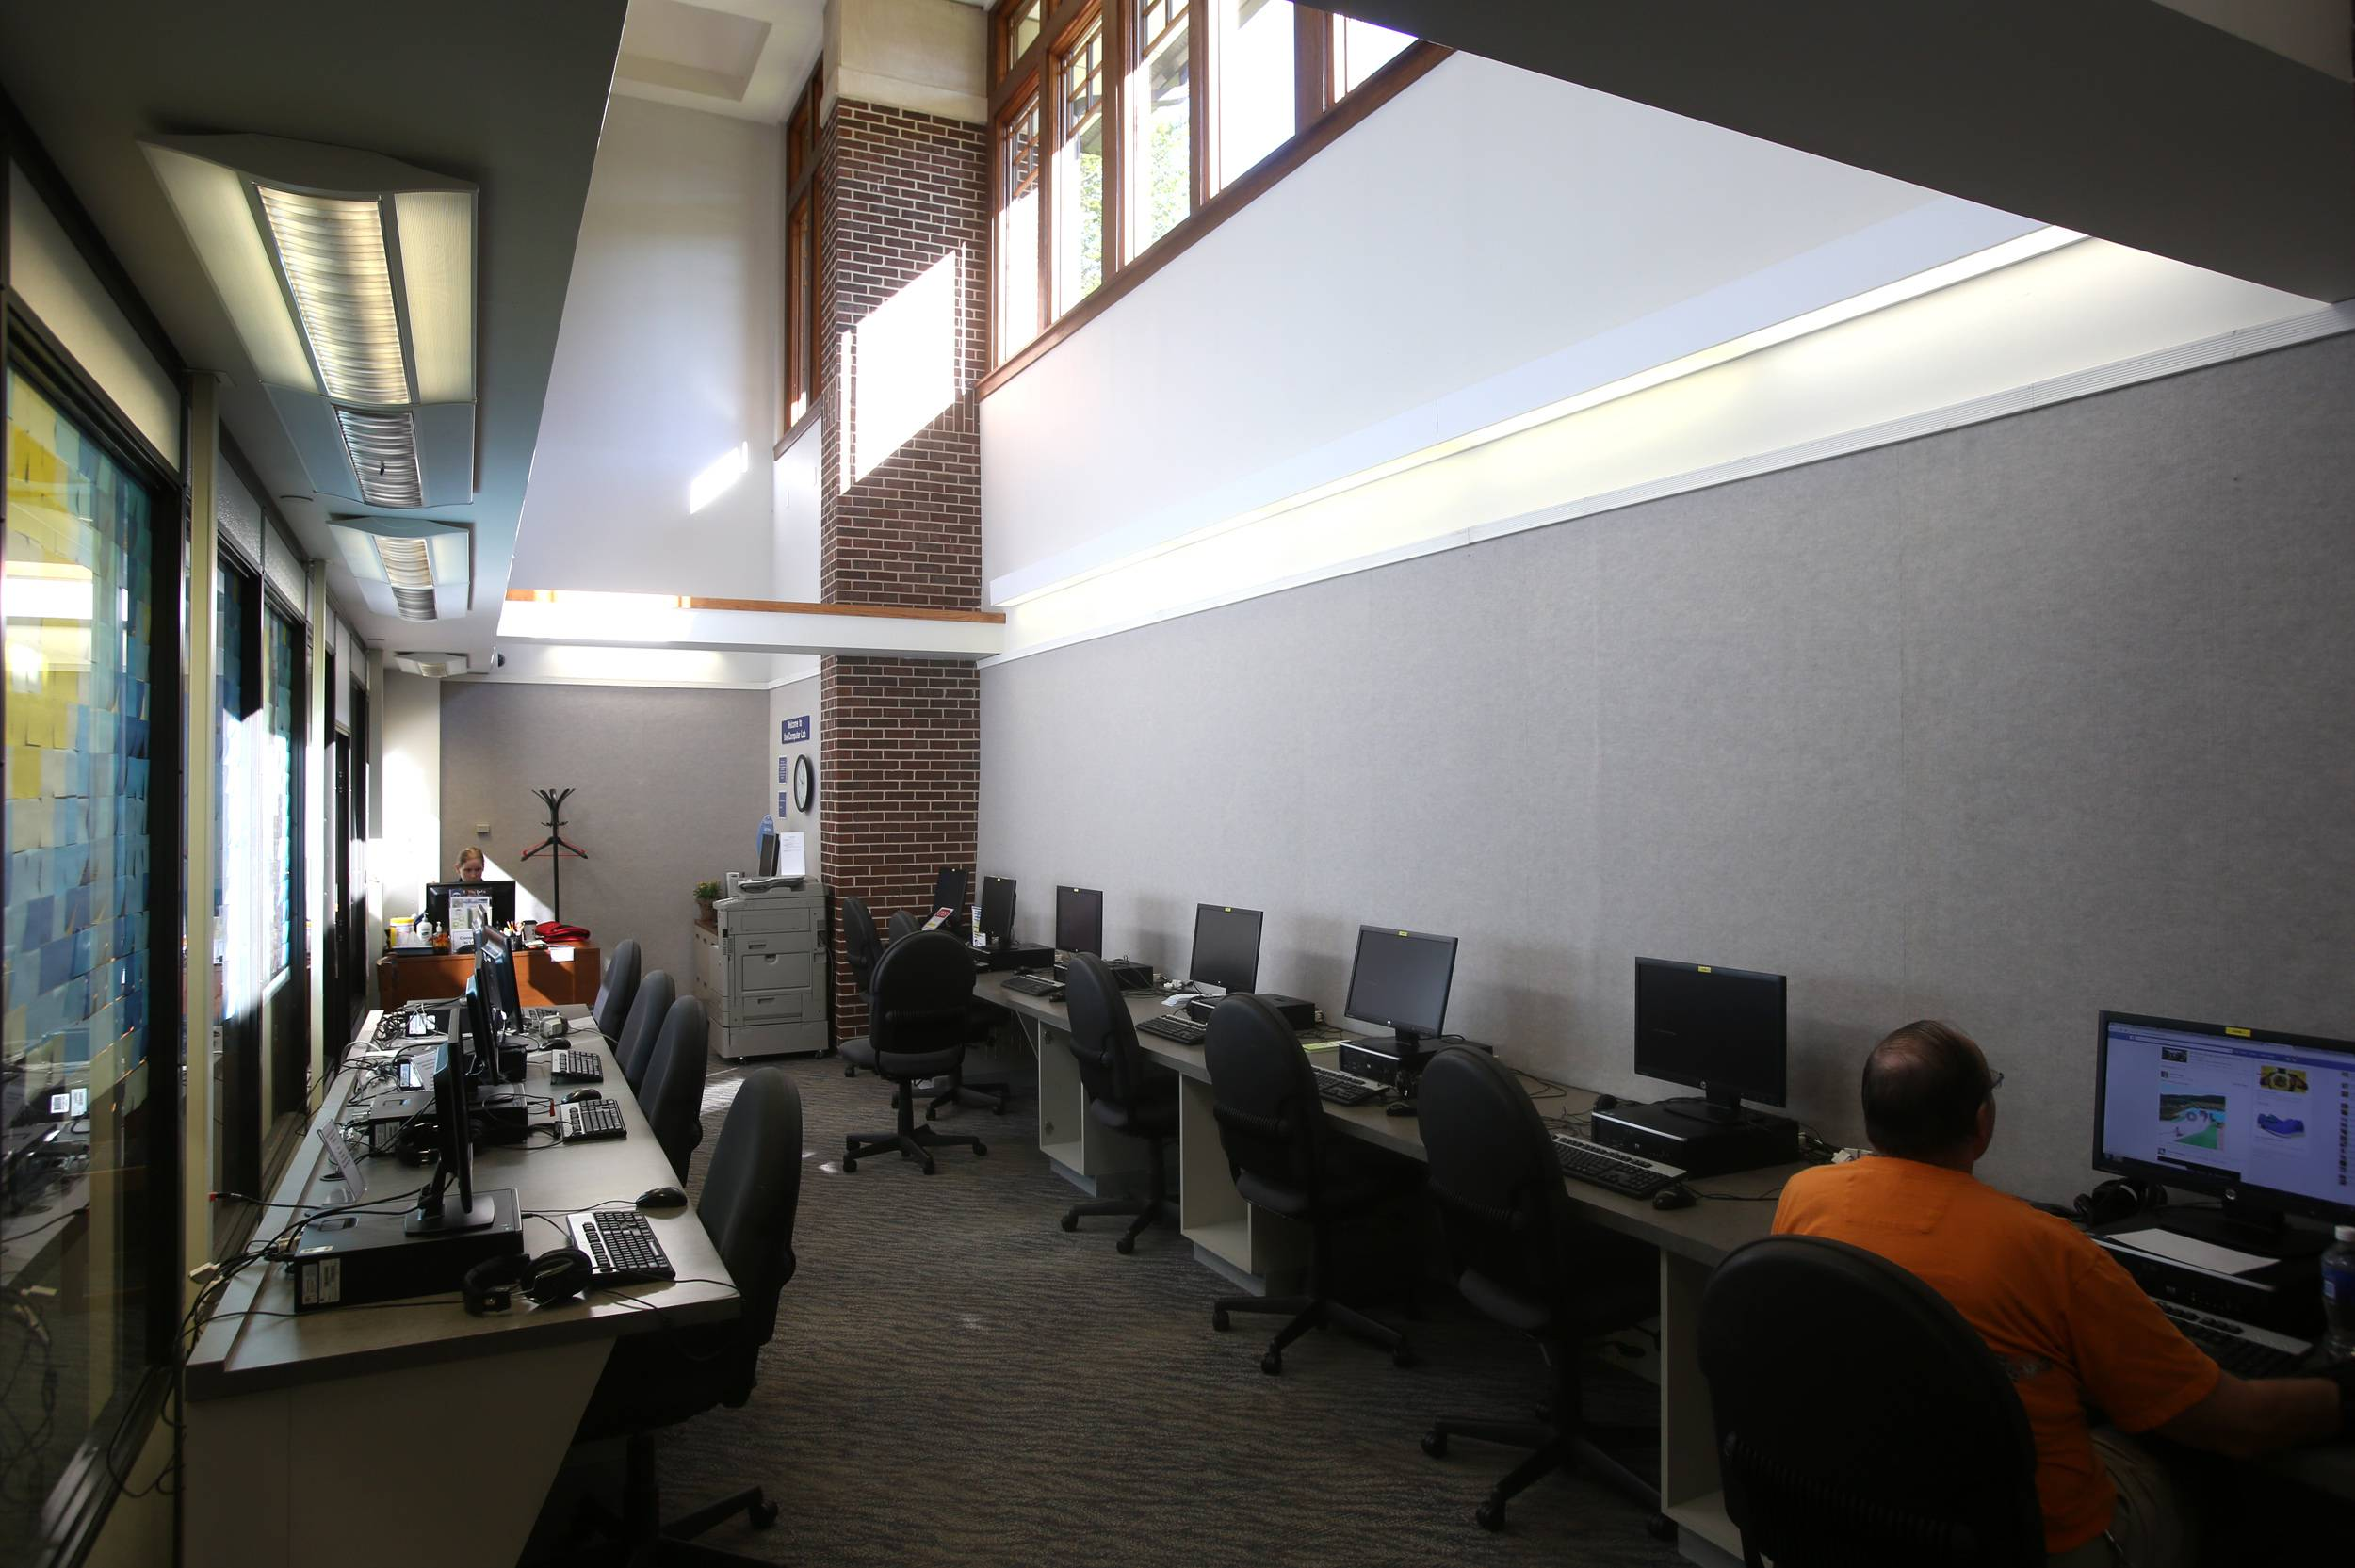 Renovations to 'refresh' Naper Boulevard Library